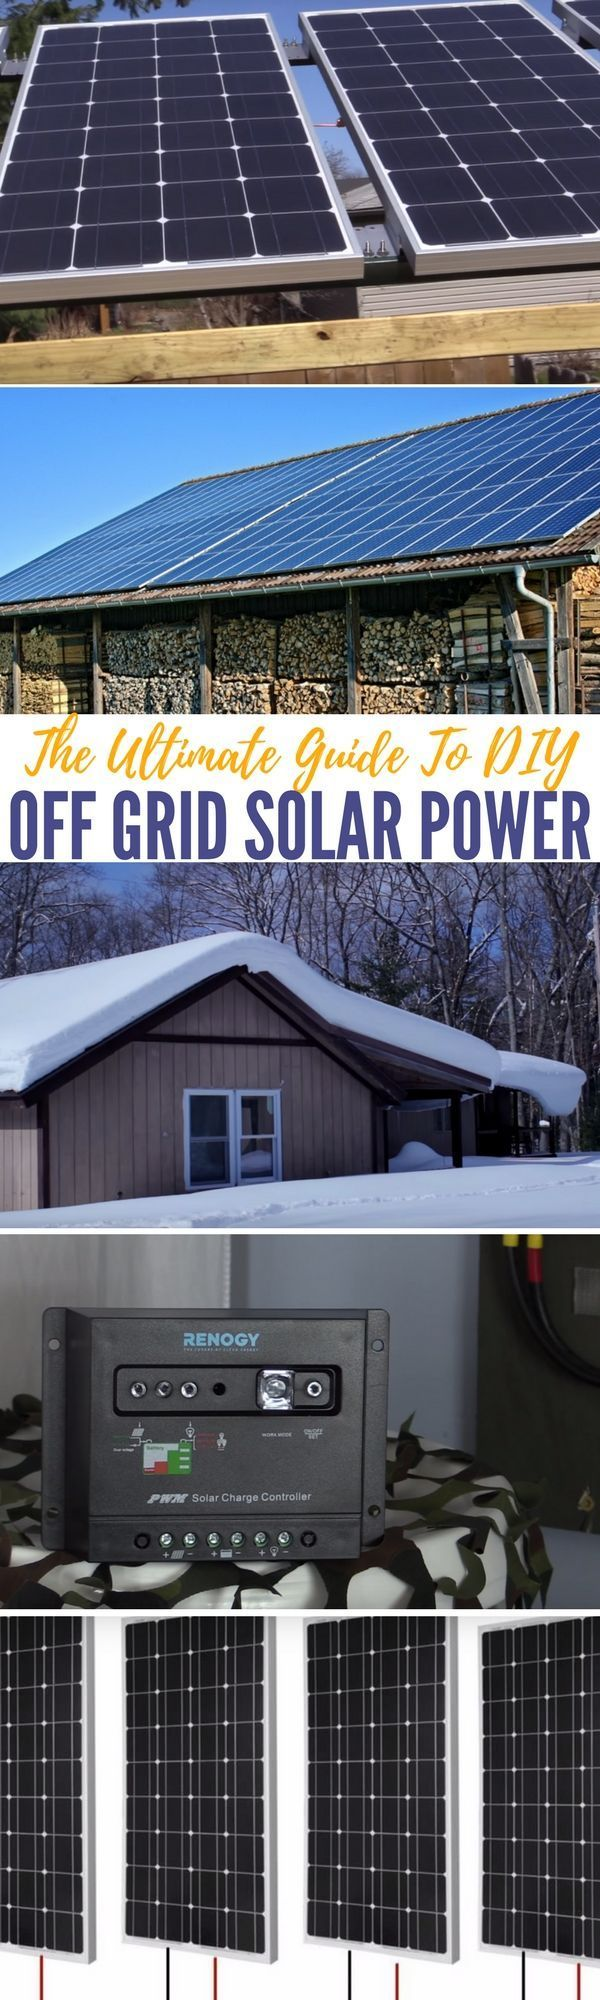 The Ultimate Guide To DIY Off Grid Solar Power — You won't need any other information on solar ever again with this information. Bookmark for later use if you are not ready for solar power yet!